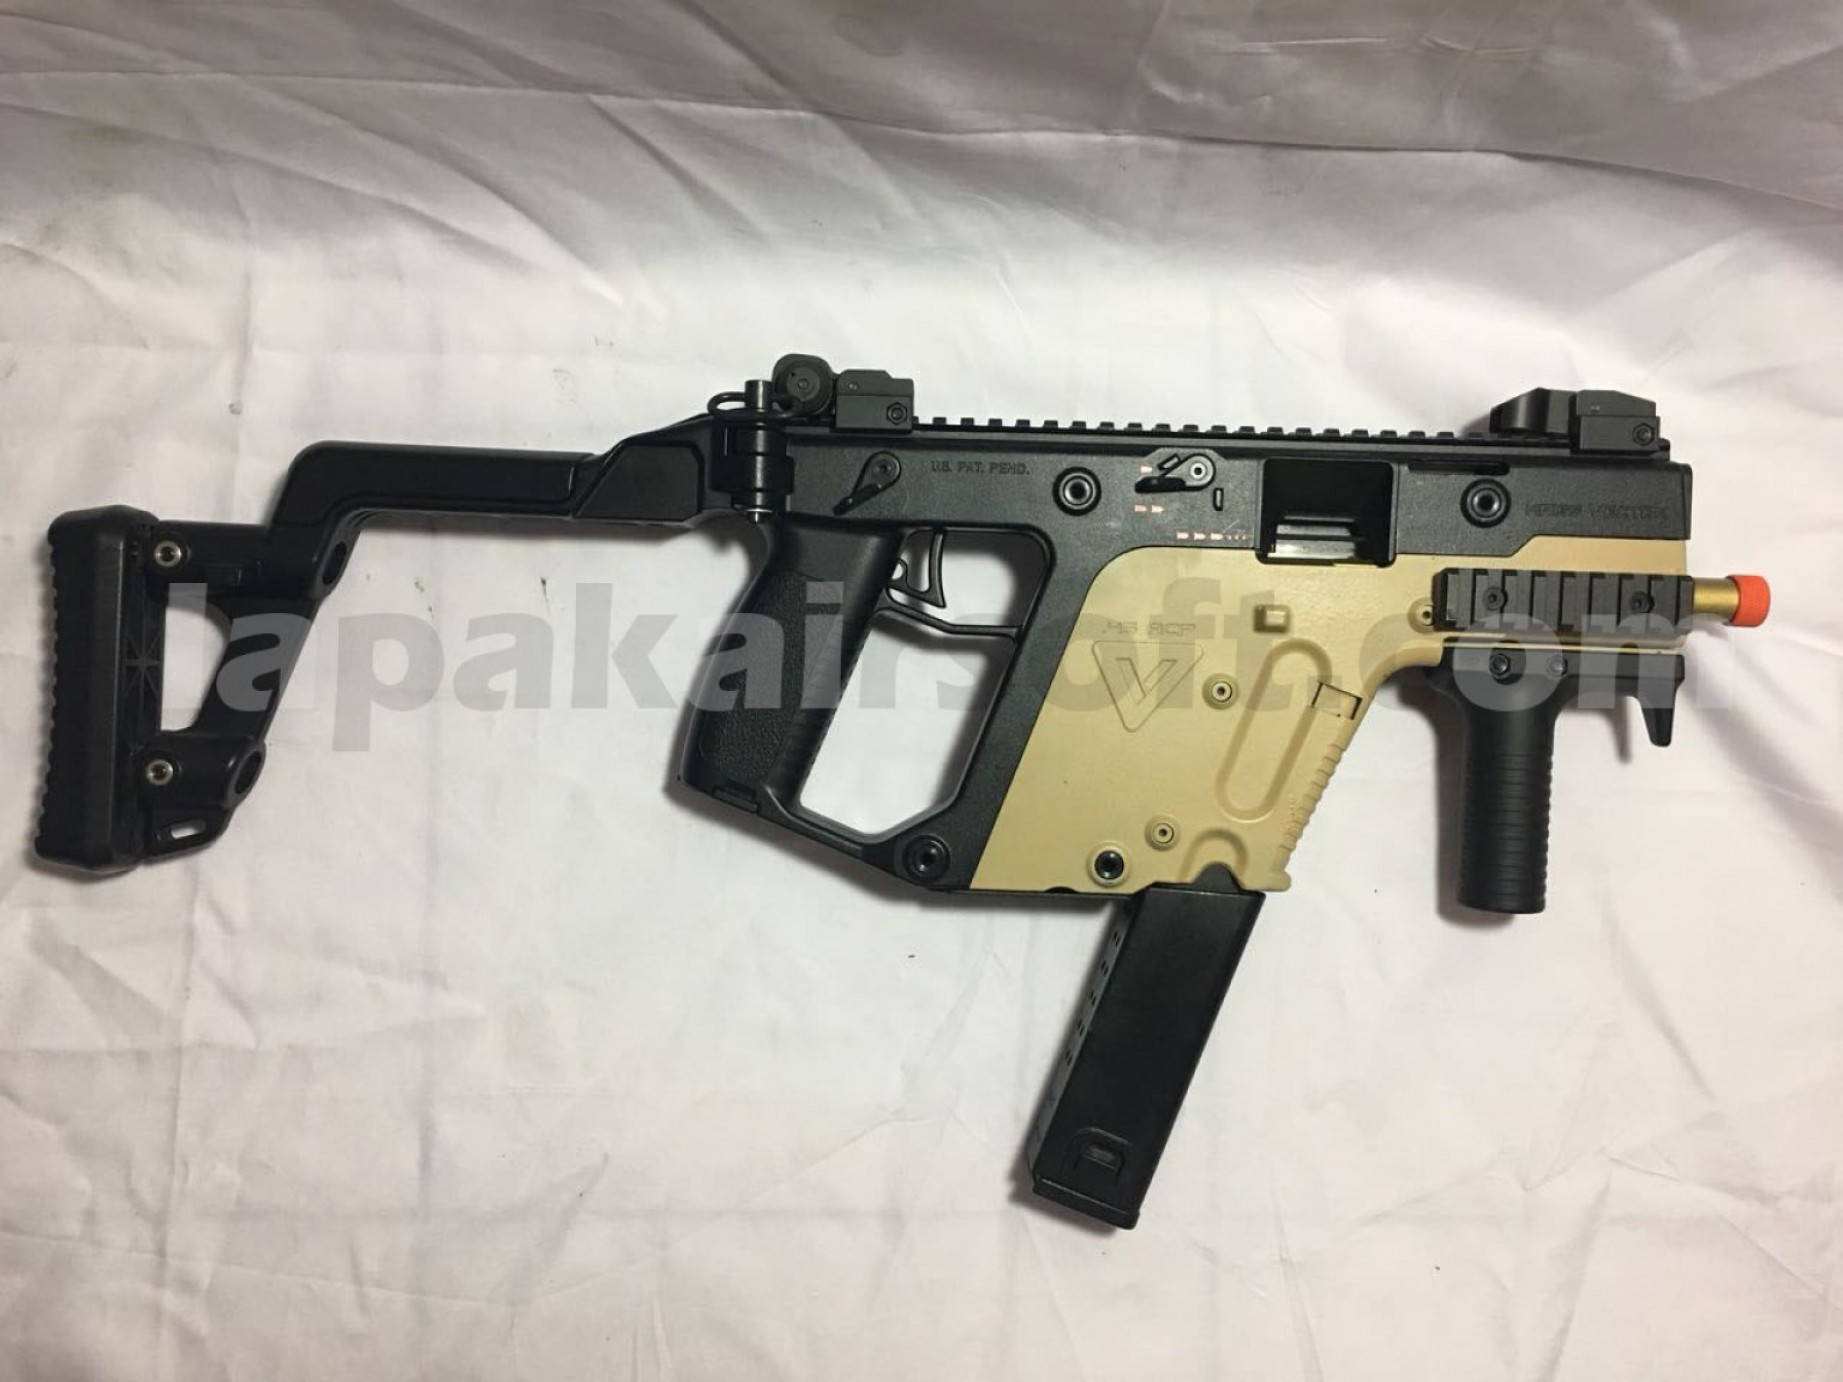 Airsoft KWA KRISS Vector: Jual Airsoft Gun Second Kwa Kriss Vector Murah Banget